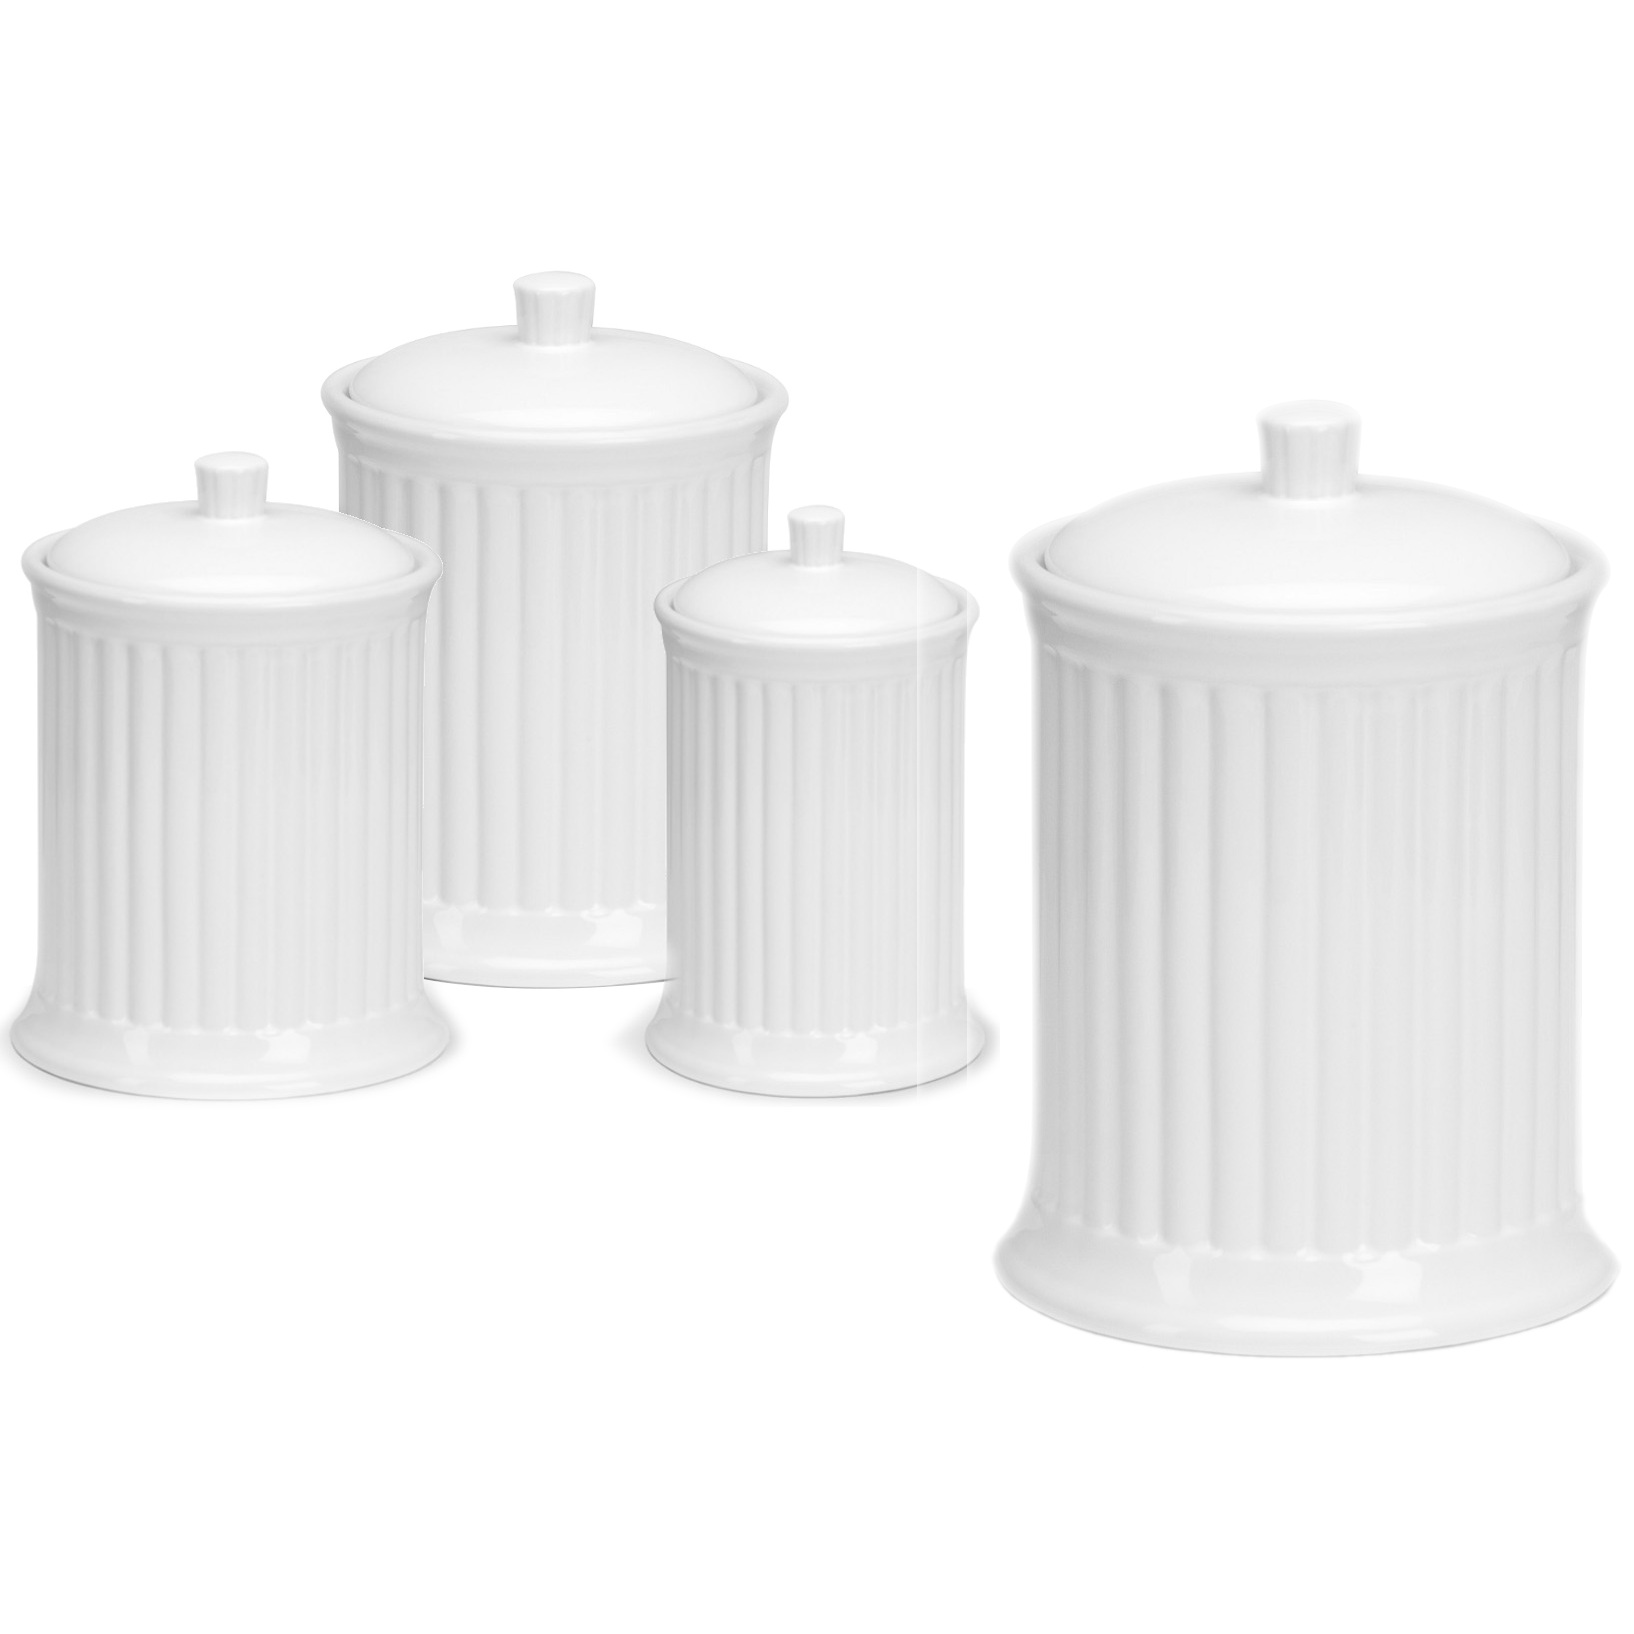 OmniWare Simsbury White Stoneware Canister, Set of 4